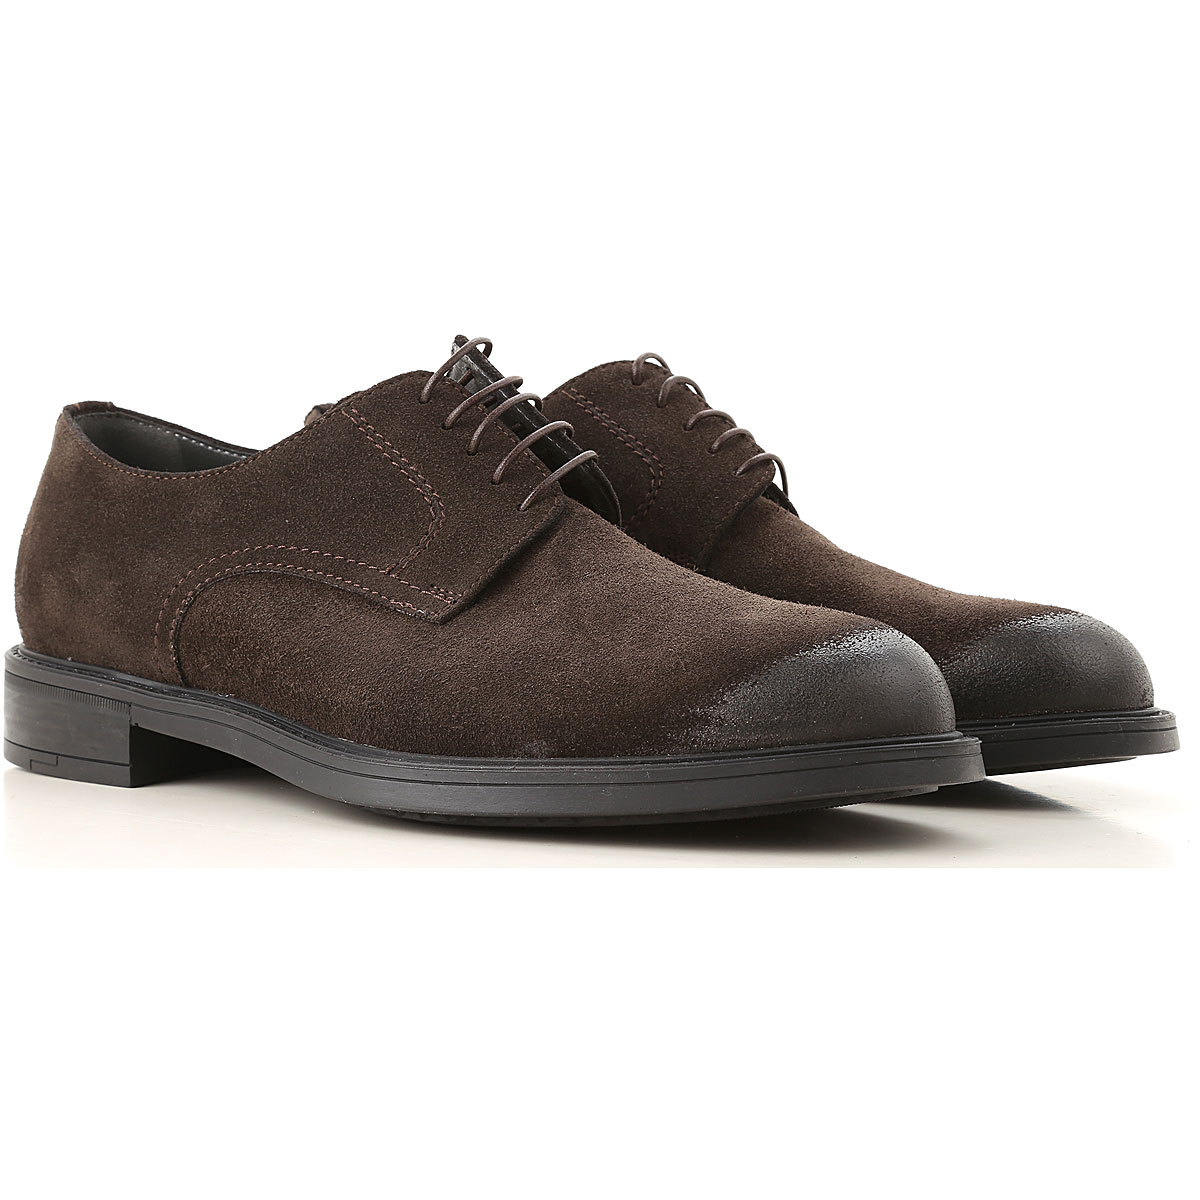 Moreschi Lace Up Shoes for Men Oxfords, Derbies and Brogues On Sale, Brown, Suede leather, 2019, 11 7.5 8 9 9.5